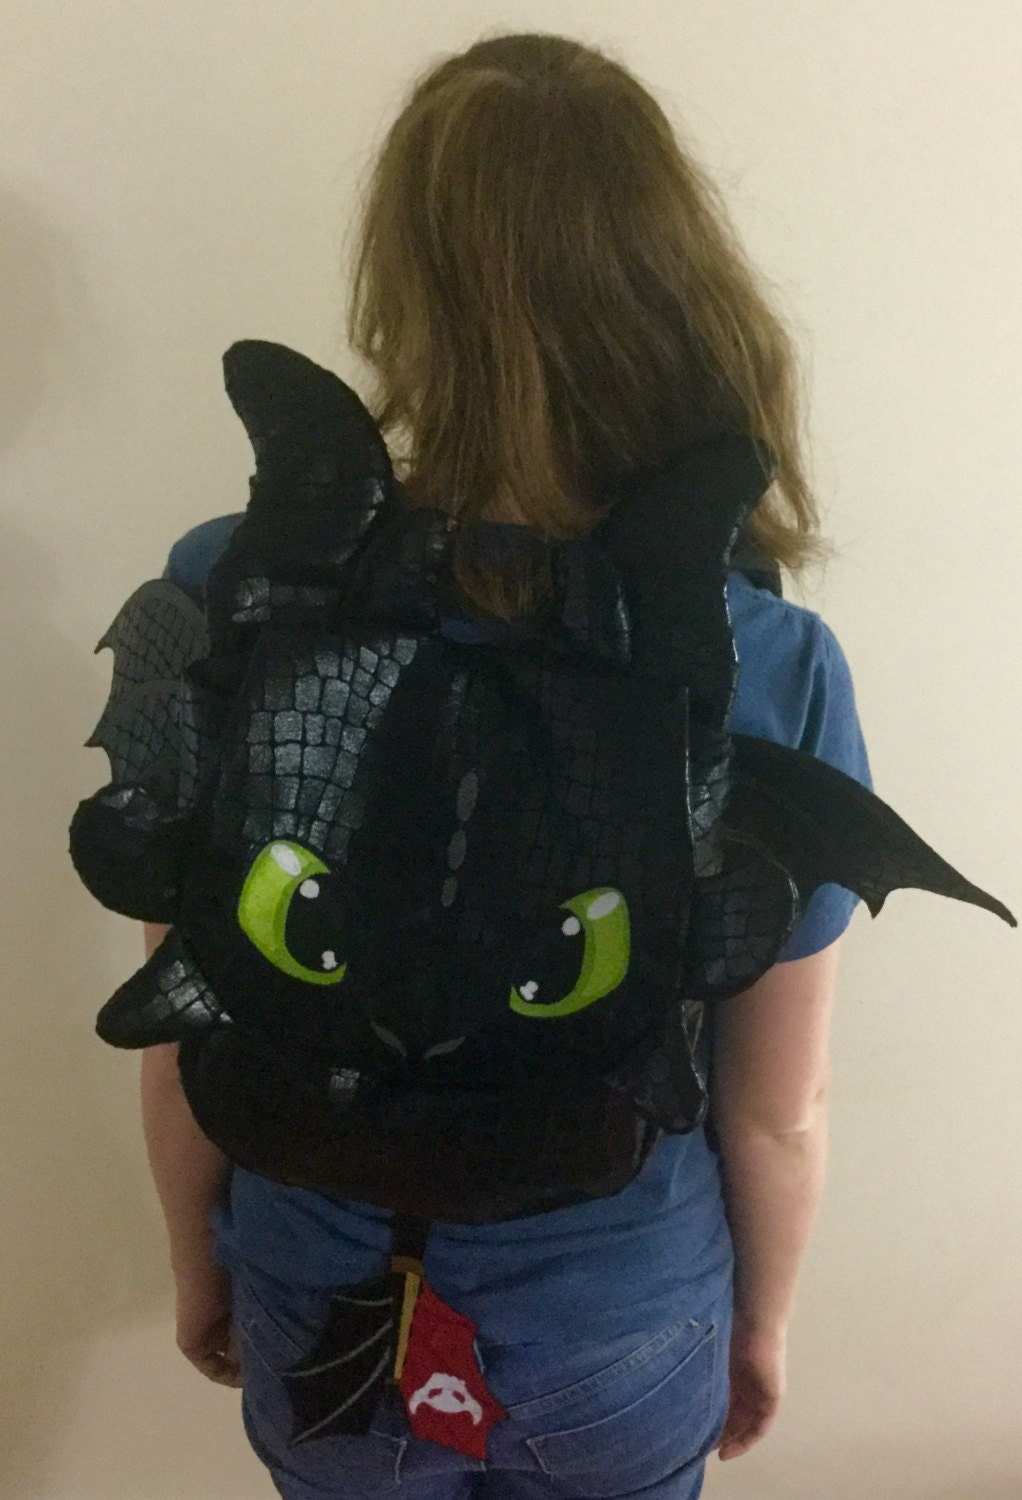 How To Train Your Dragon Toothless Backpack Bag Nap Sack With